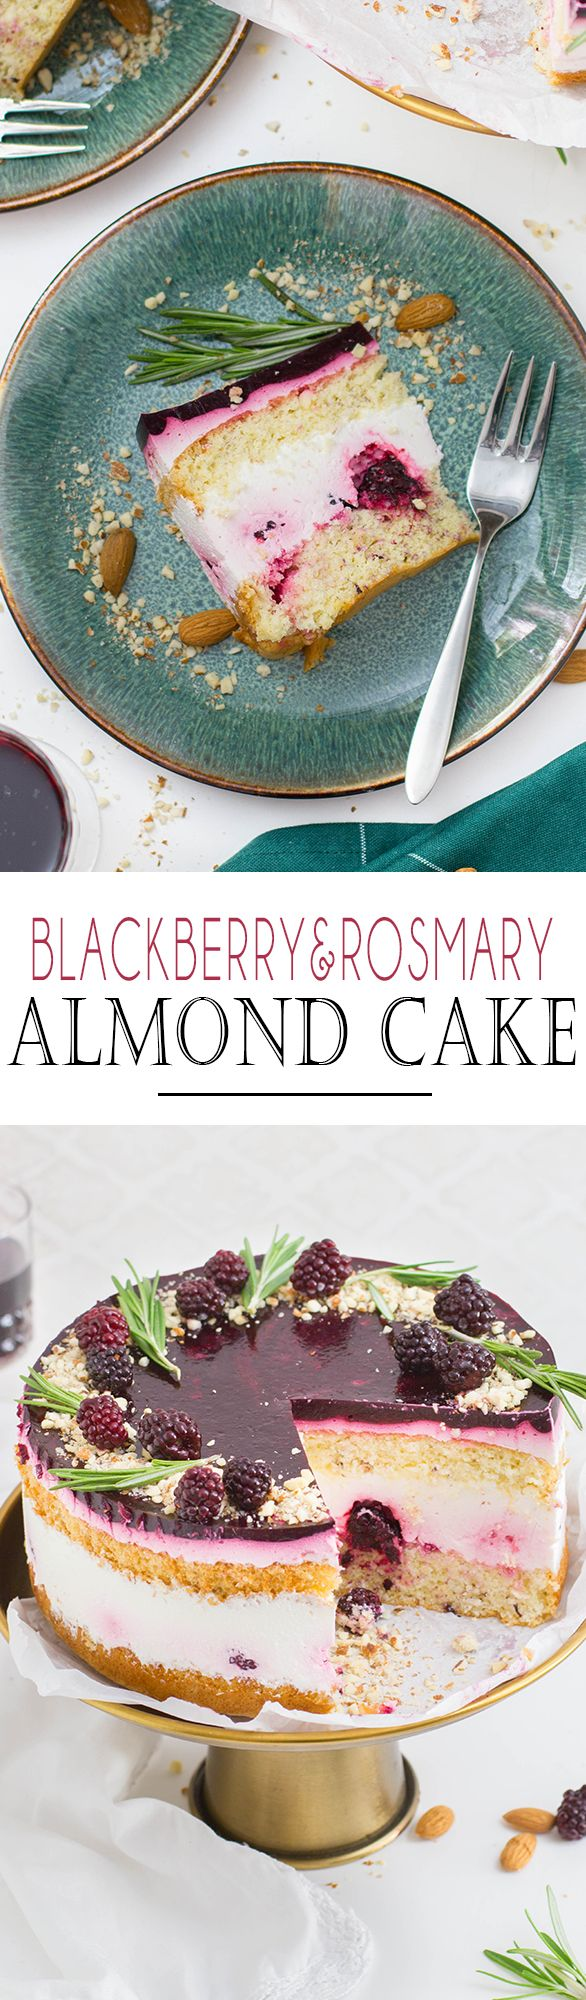 Elegant Blackberry and Rosmary Almond Cake with lemon cream // Elegante Brombeer Rosmarin Mandeltorte mit Zitronencreme